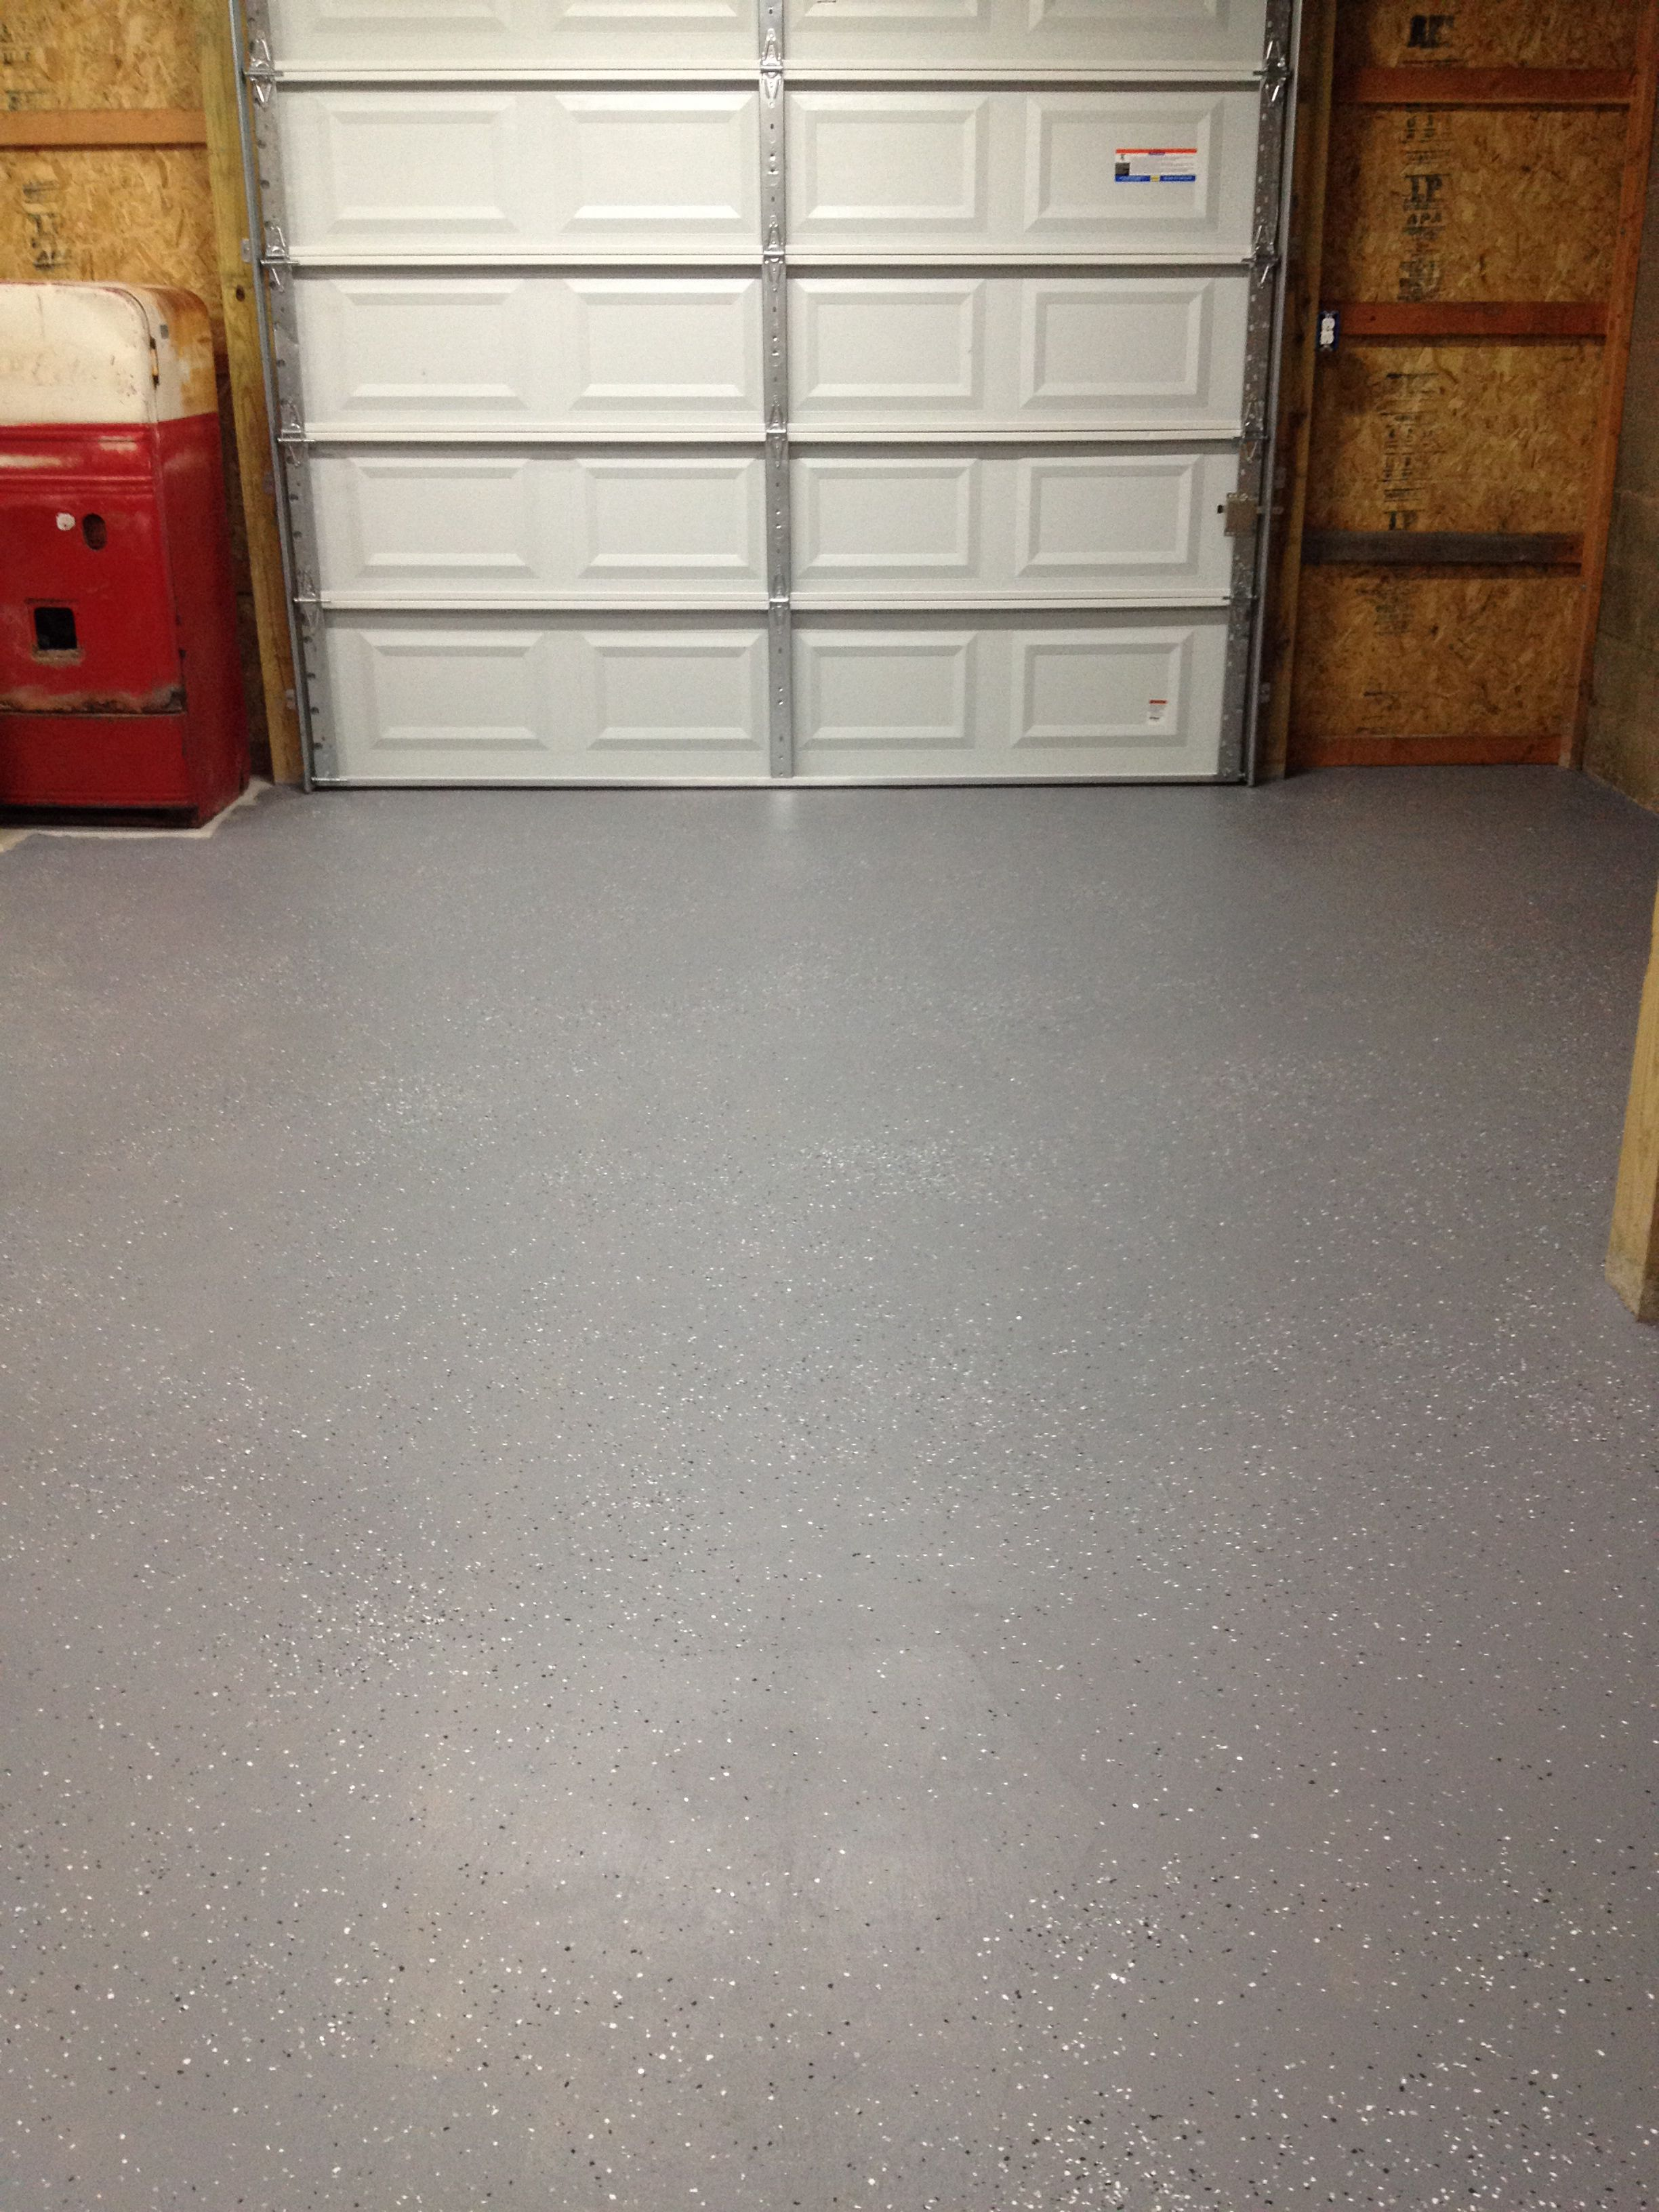 Floor Paint Home Depot Behr 1 Part Epoxy Garage Floor Paint With Metallic Flakes From The